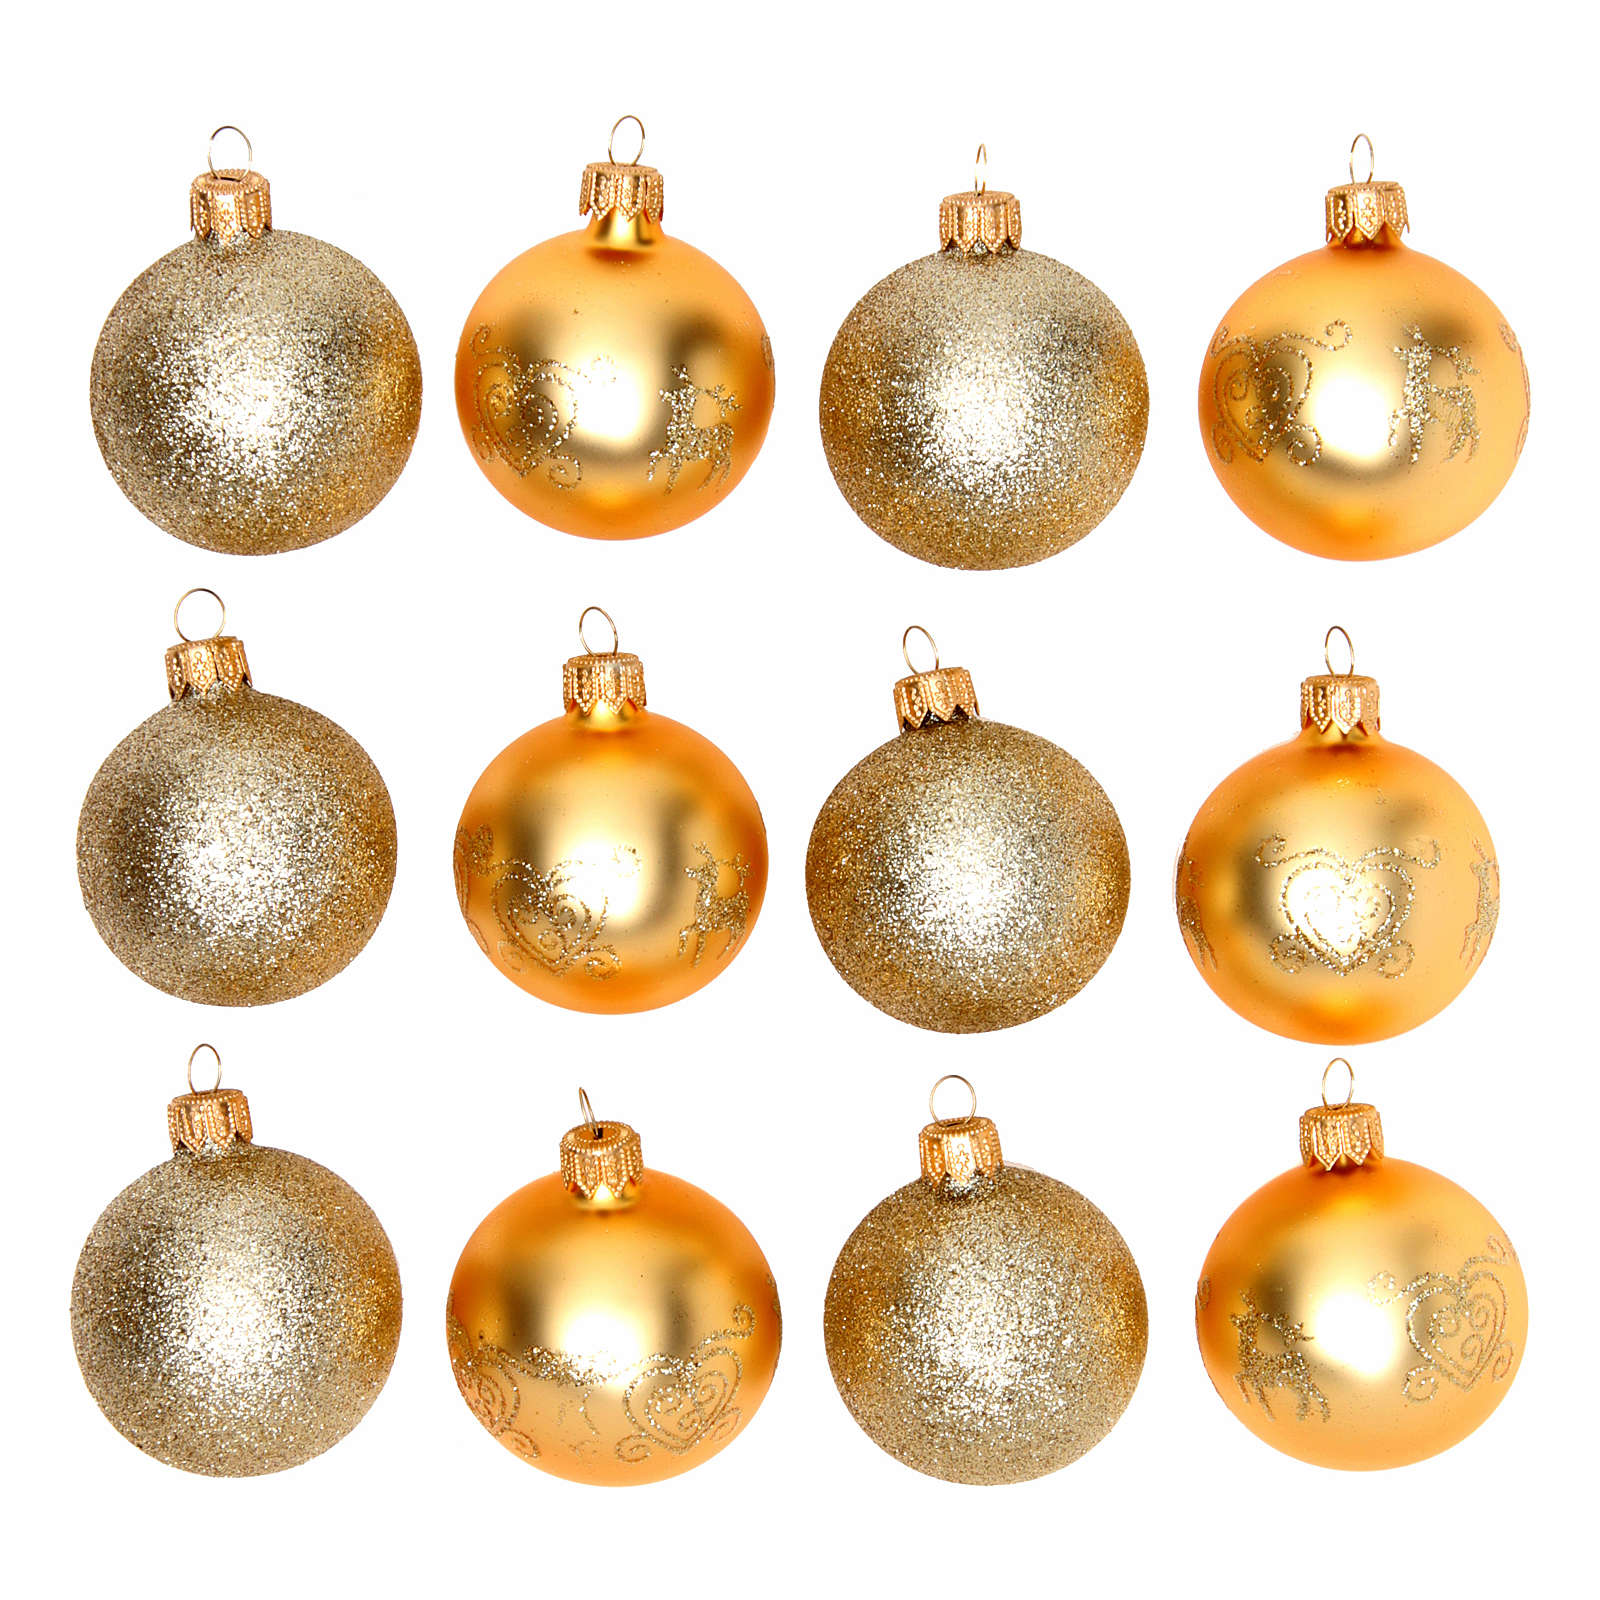 Christmas Bauble Gold Glass 60 Mm Set Of 12 Pieces